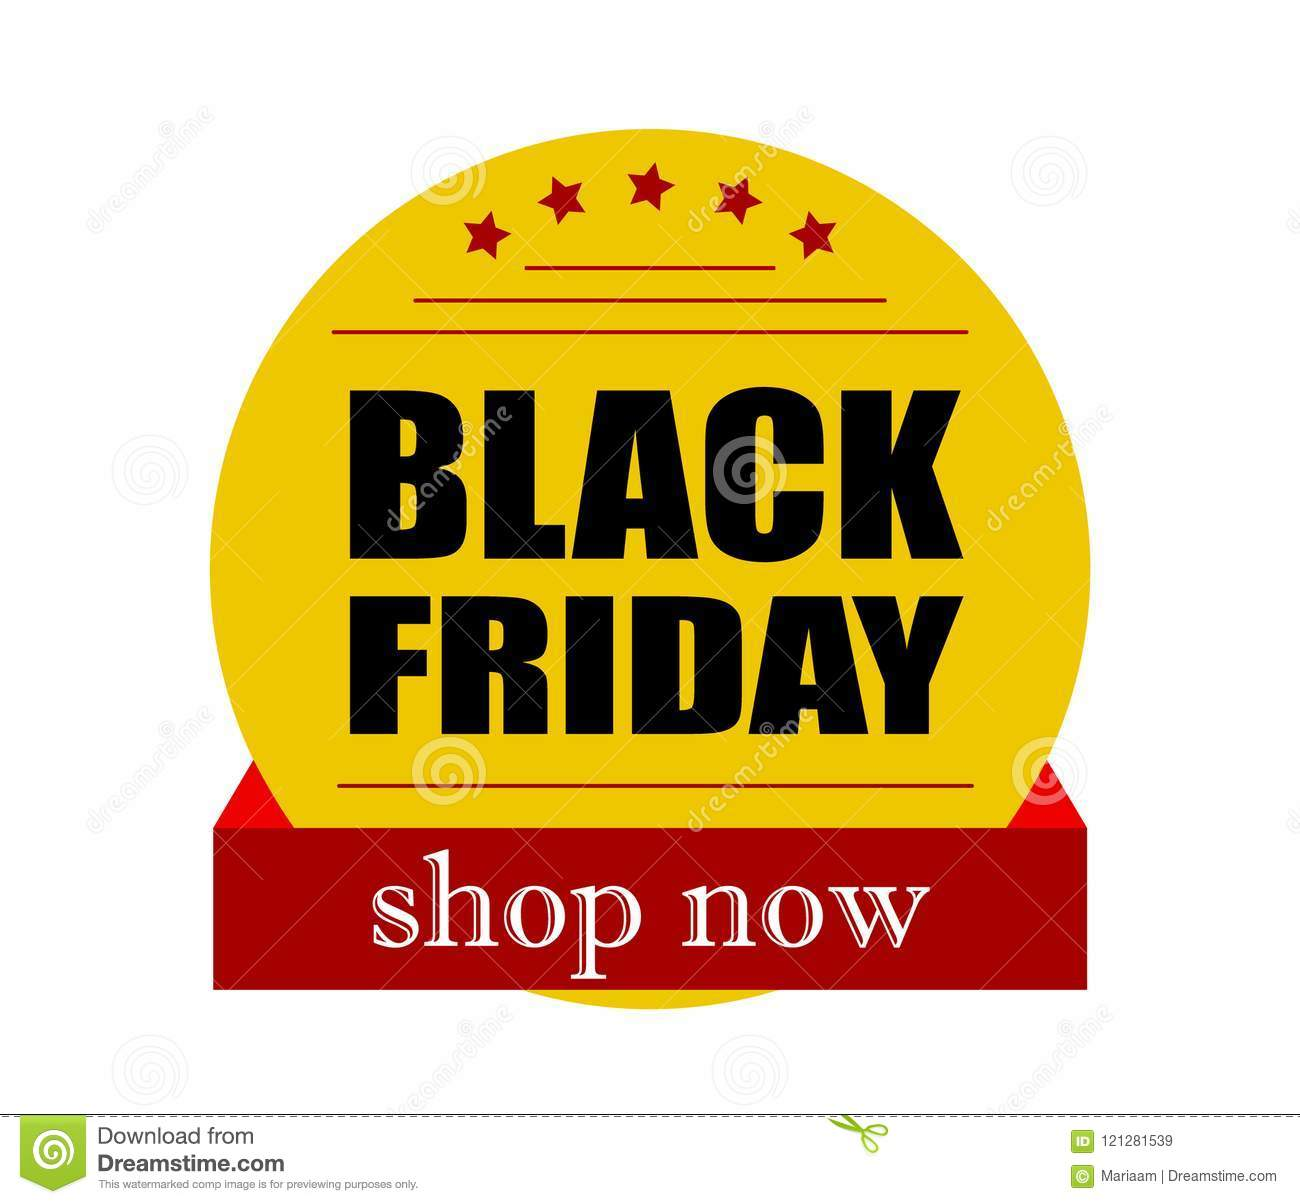 c76c3b0ee Black friday! Shop now and get great deals. Special offers. Vector flat  design over white.